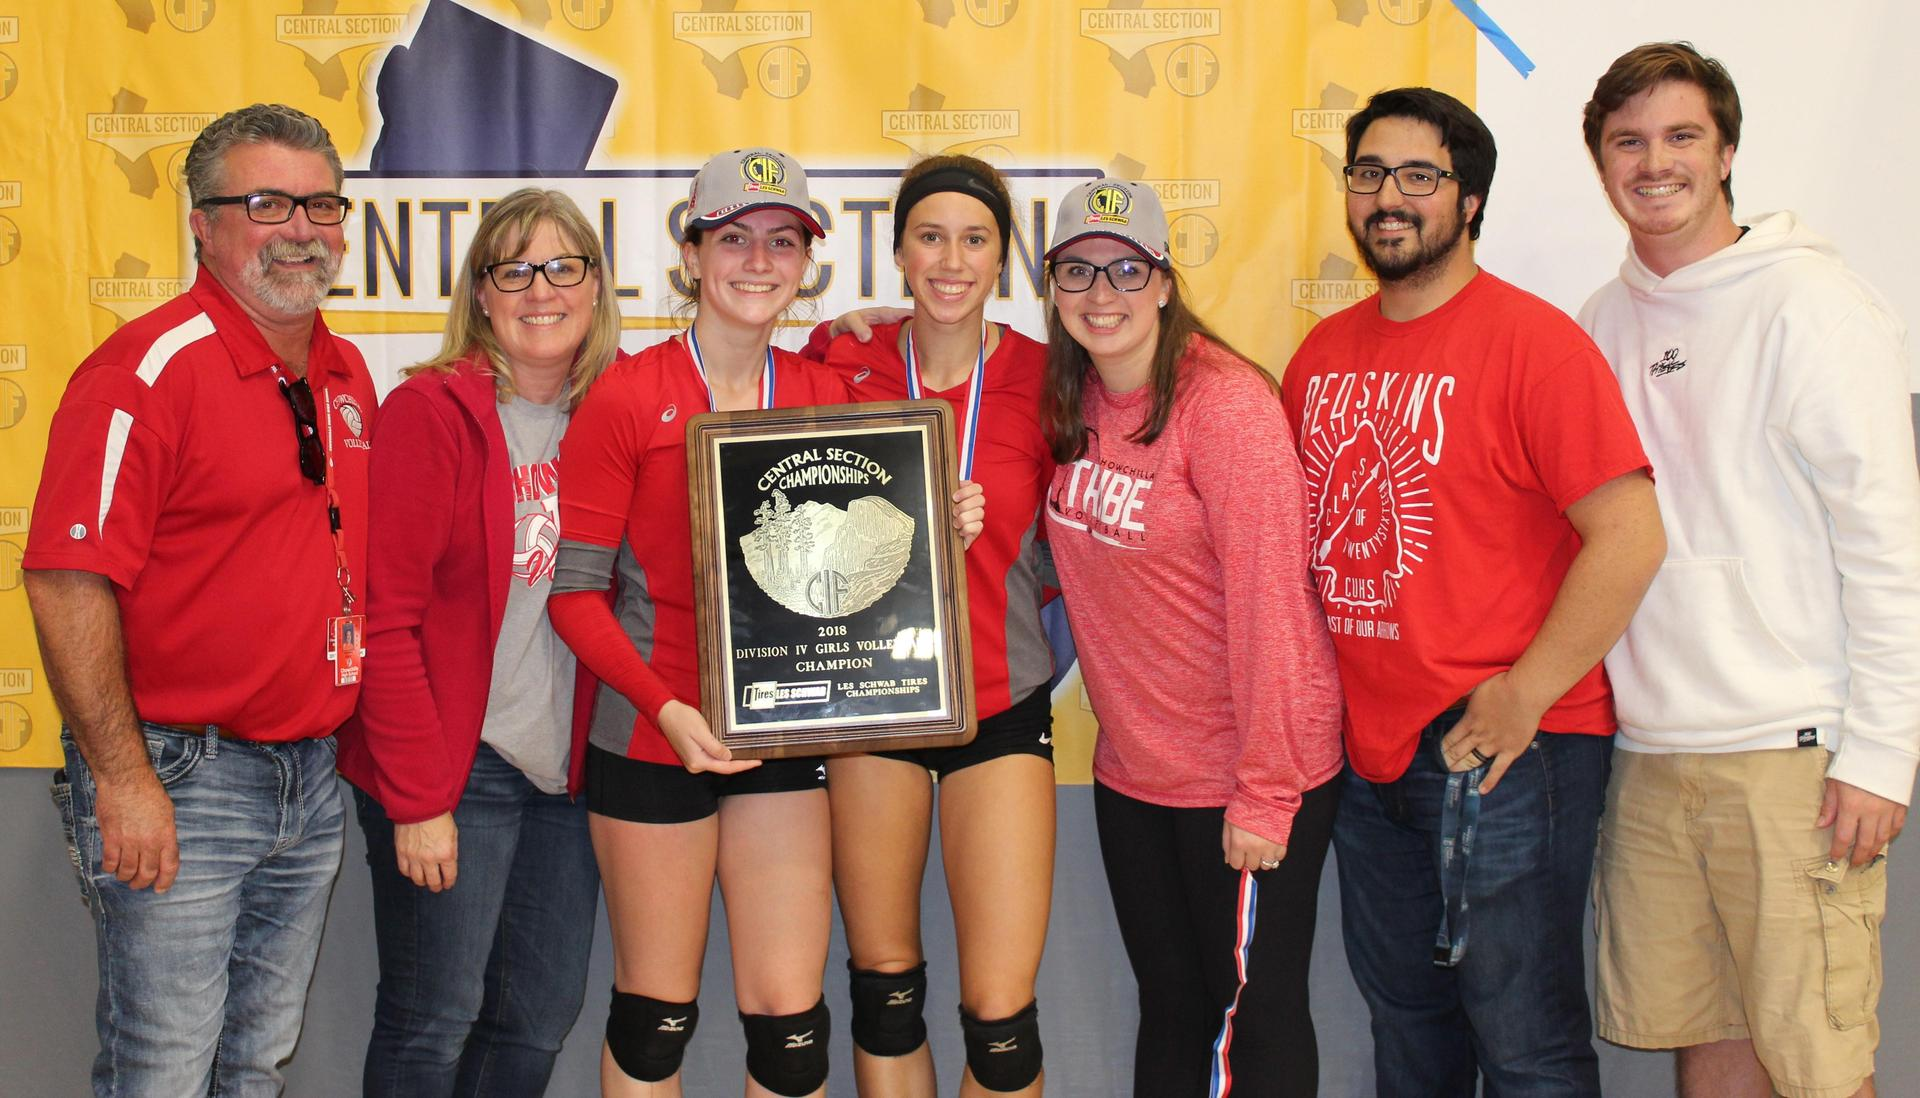 Volleyball players, parents and staff celebrating after winning